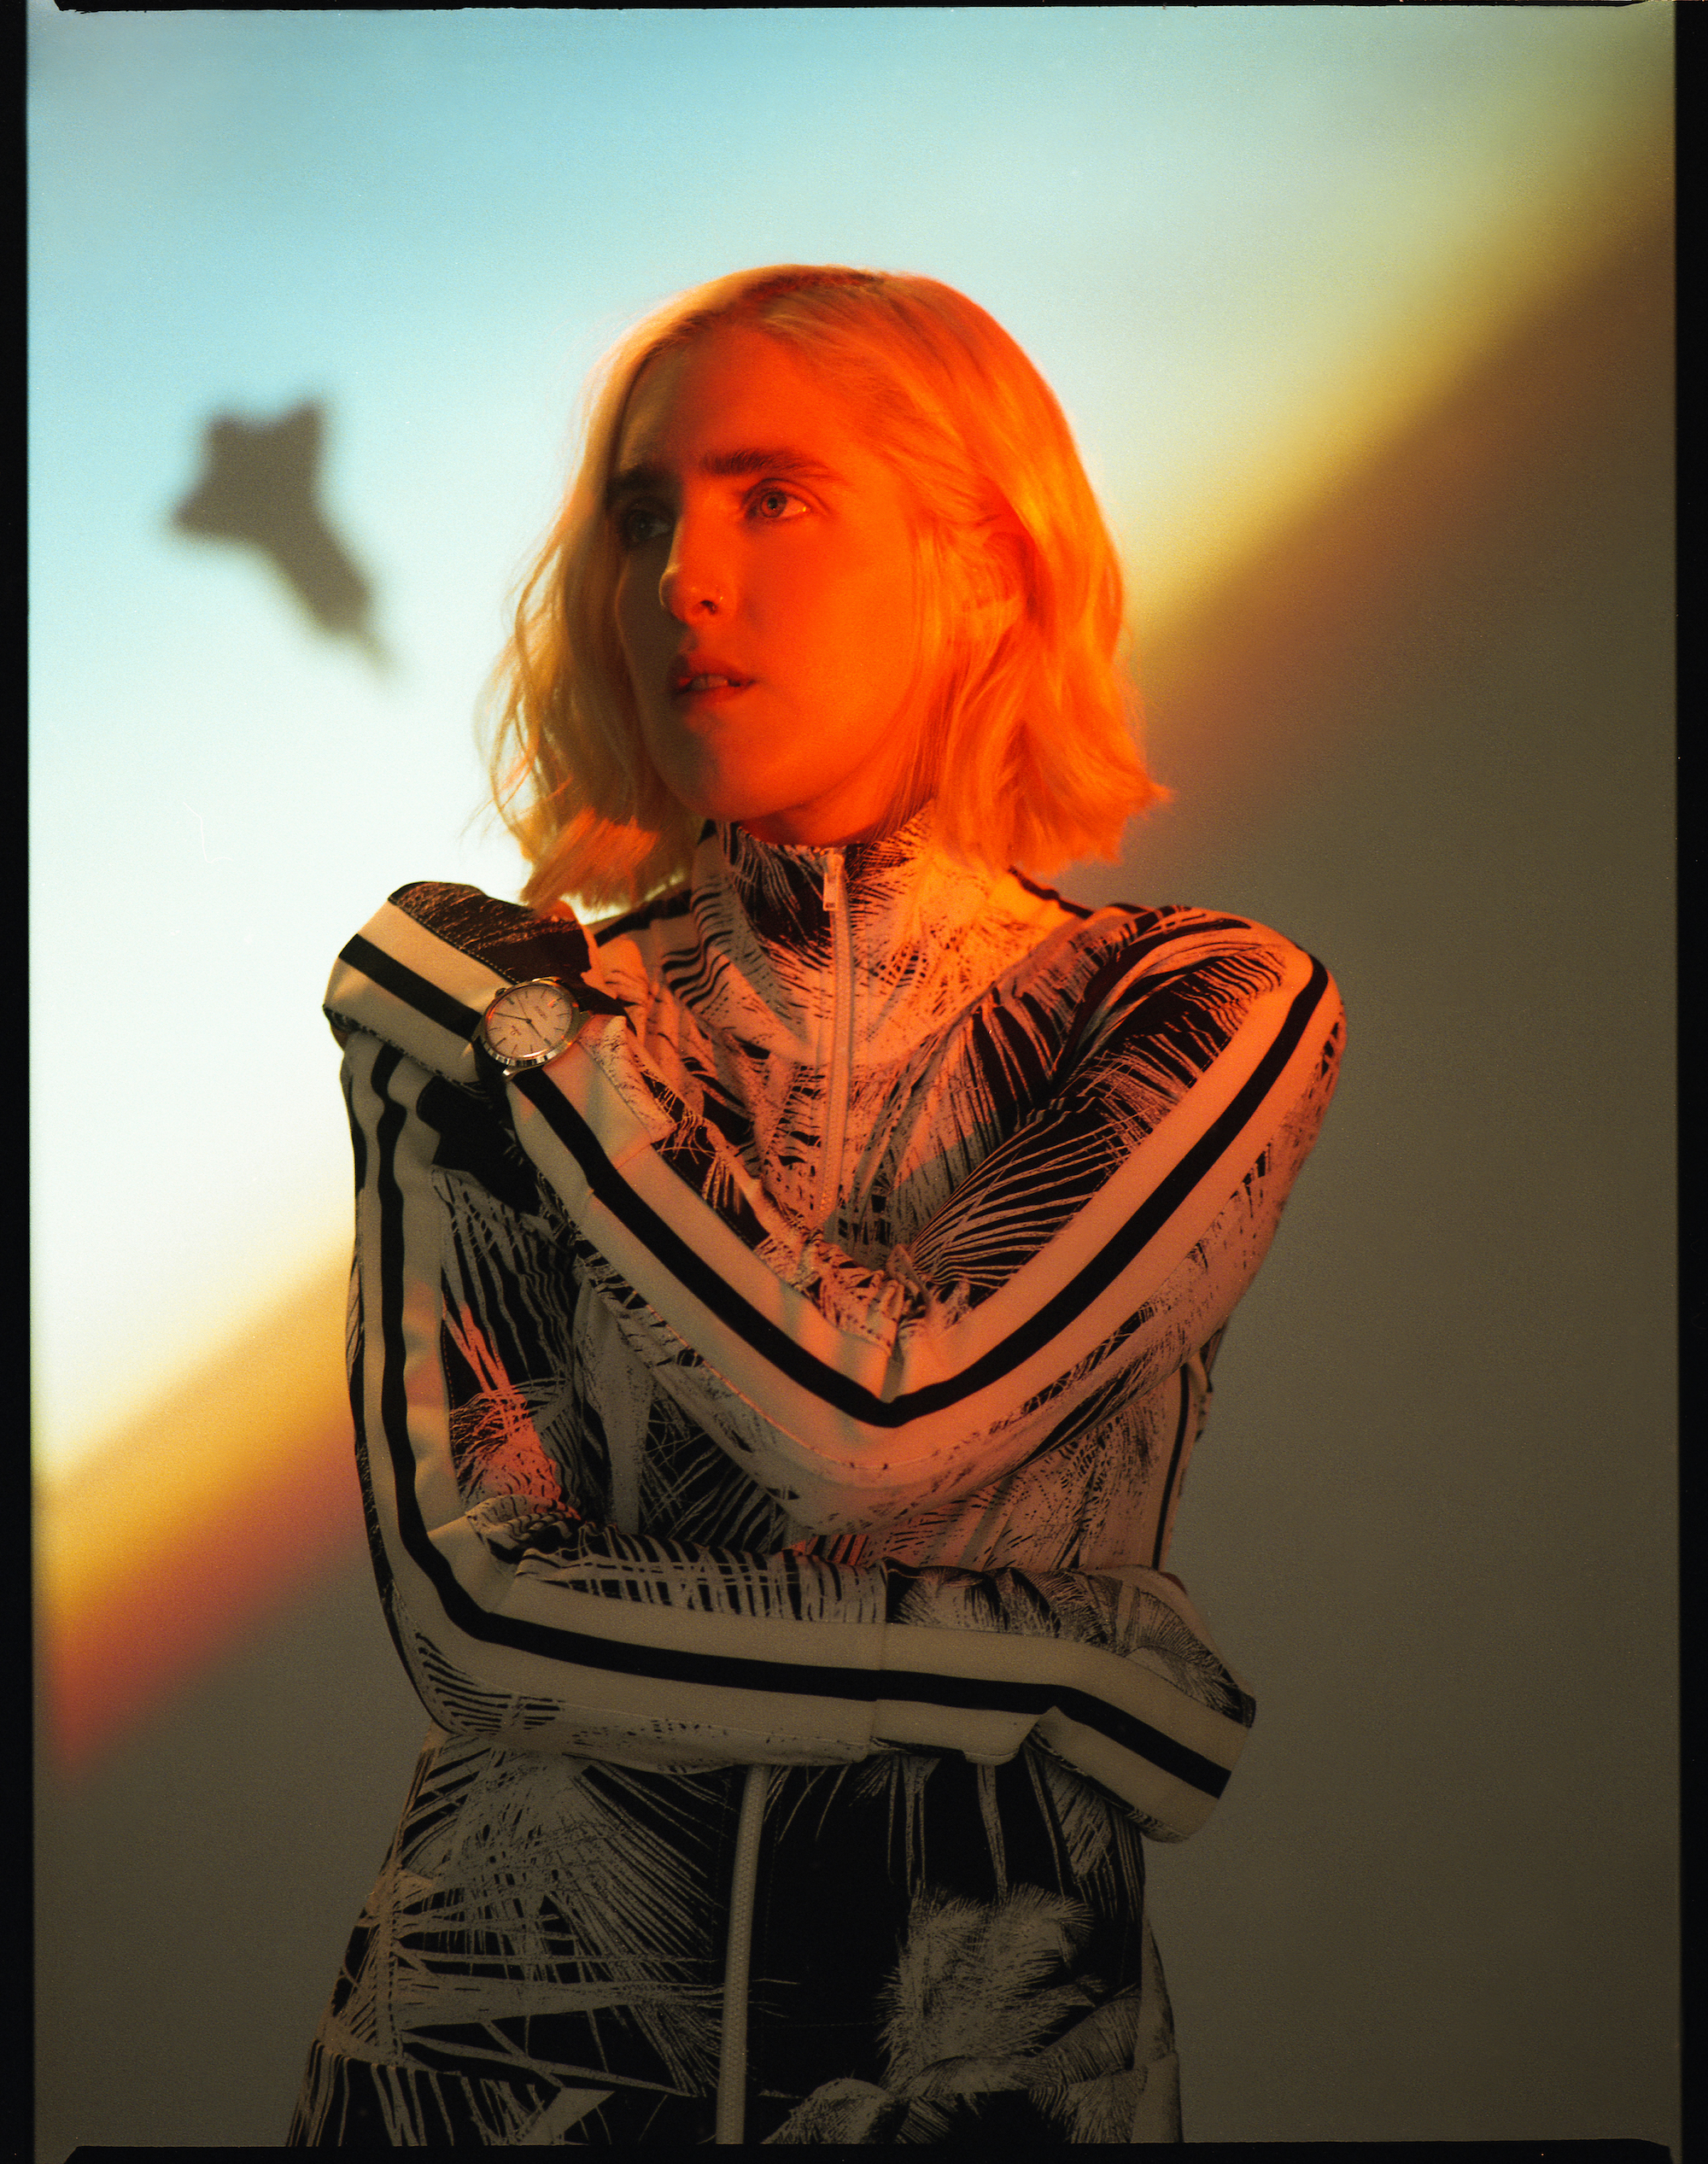 Singer Shura in the Omega Zine in the Summer 19 issue of Wonderland zip-up